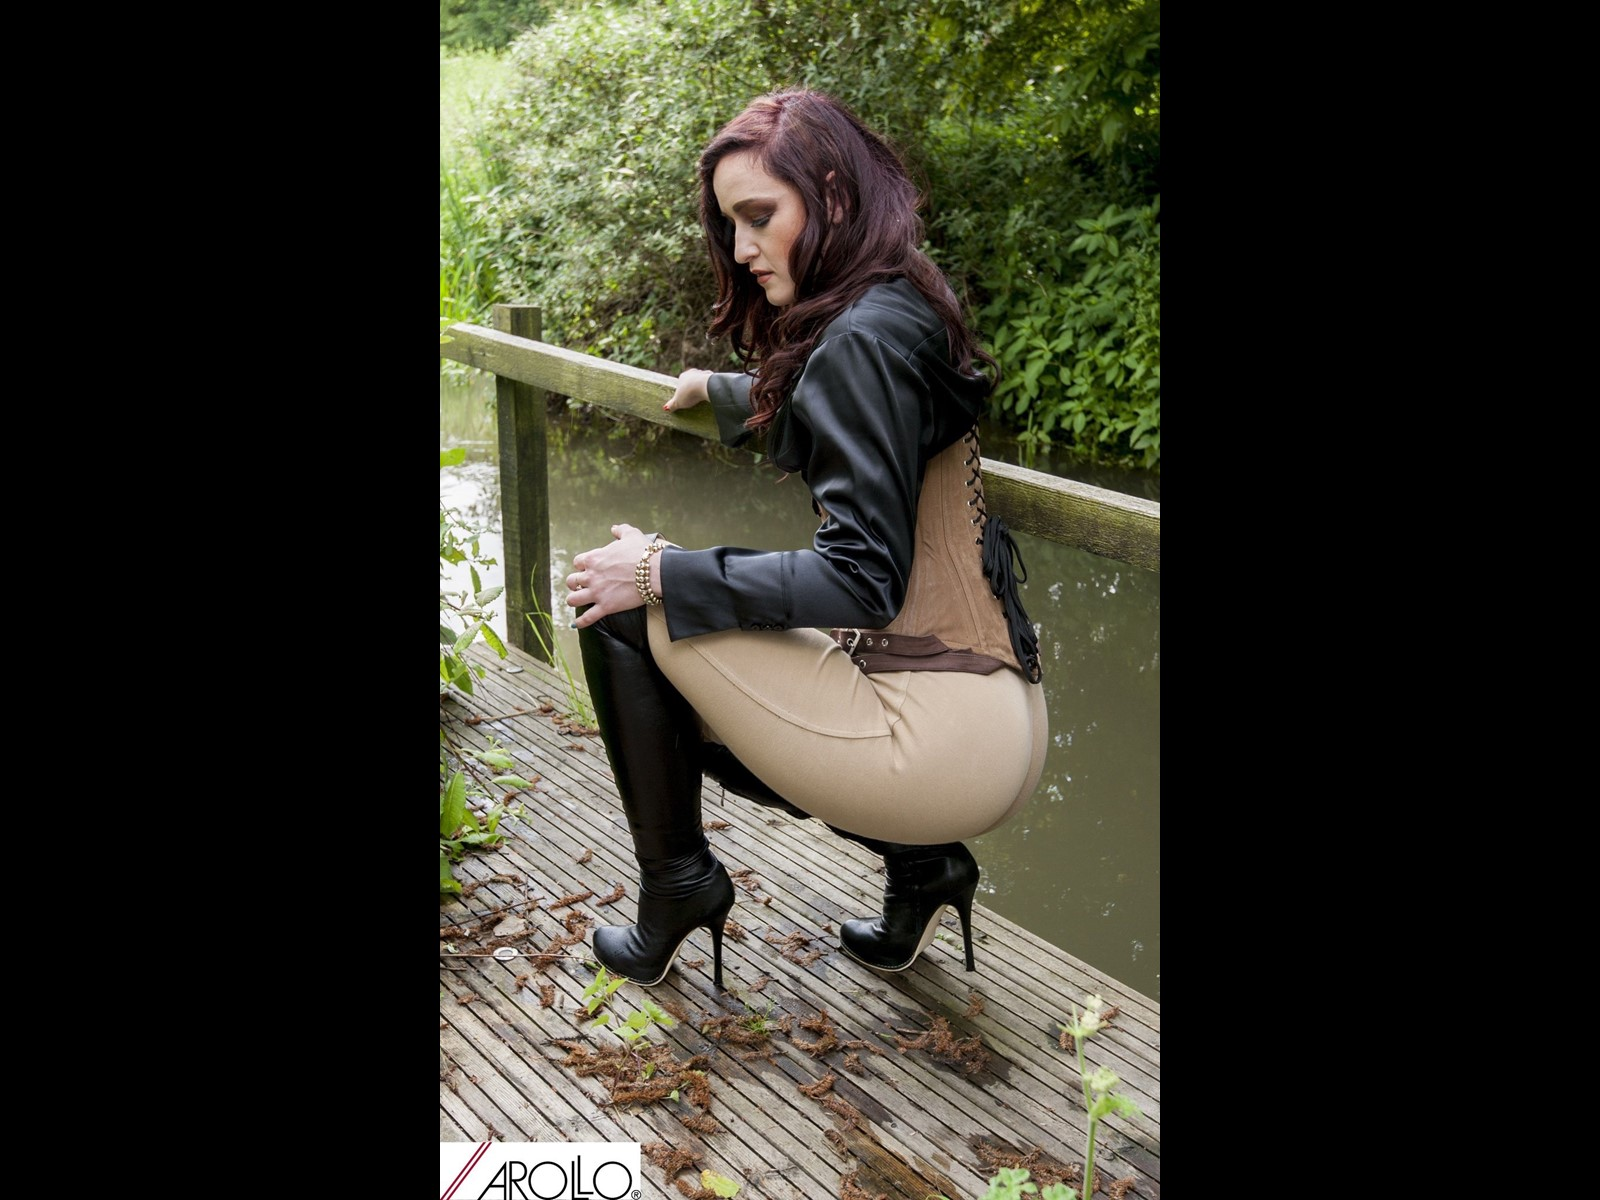 Arollo Boots by the River in a Suede Steel Boned Corset and Jodhpurs